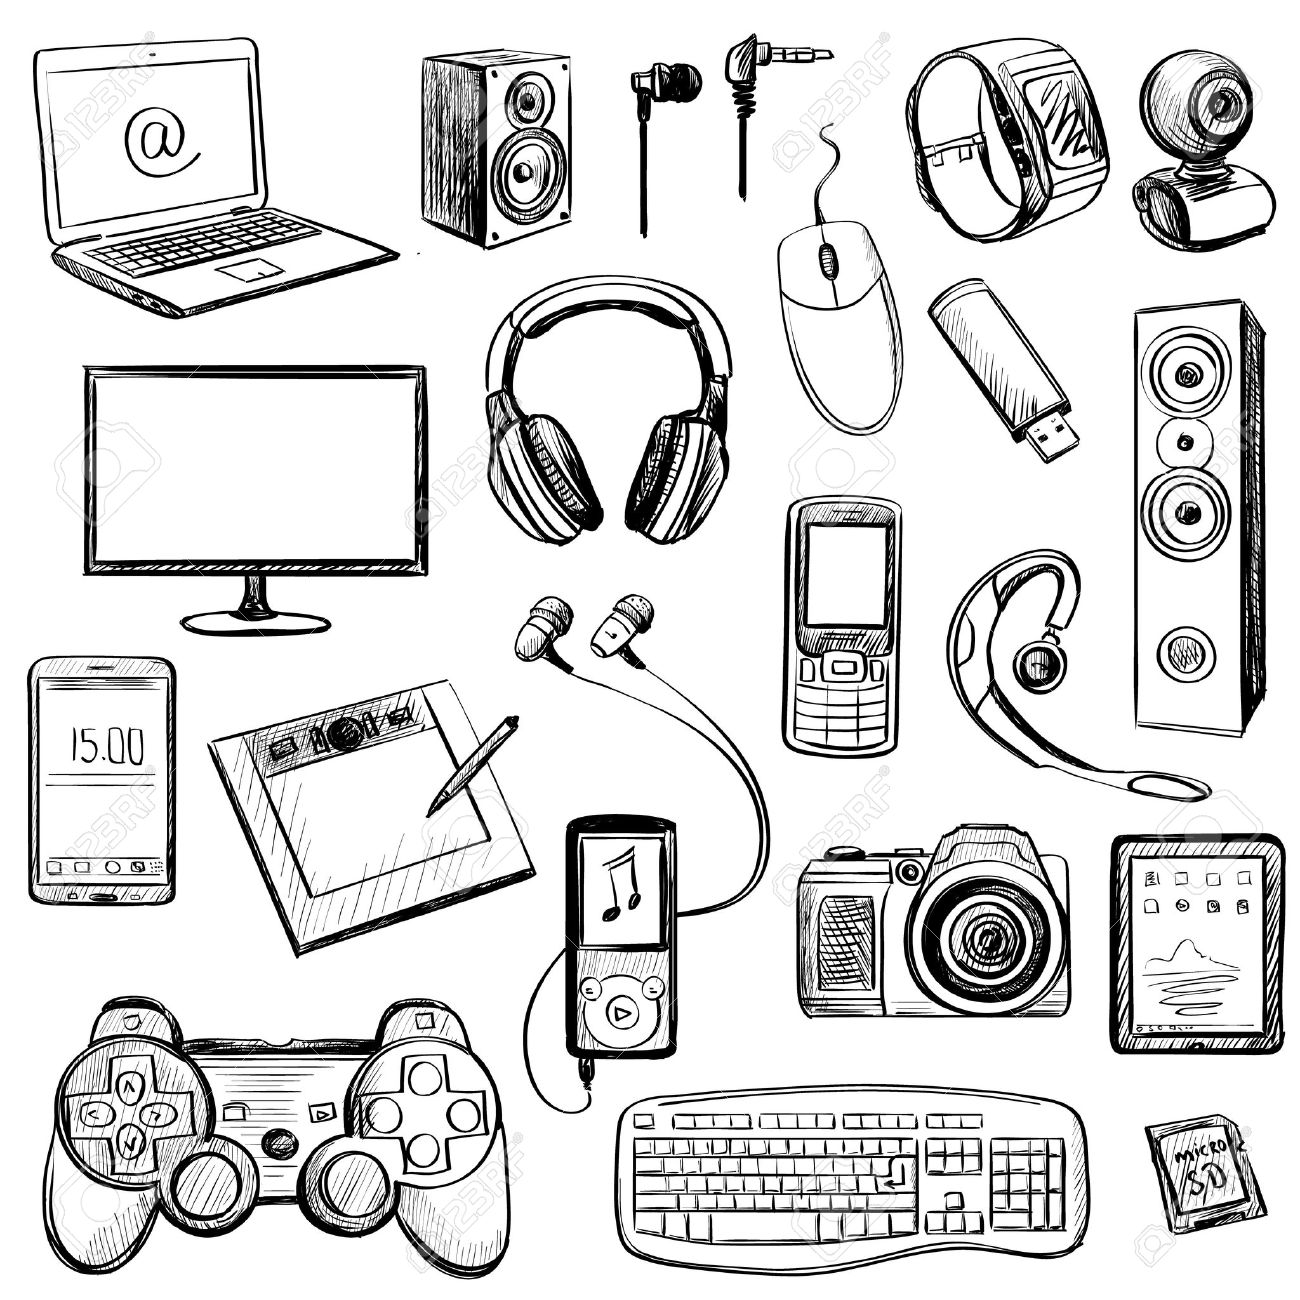 1300x1300 Set Of Hand Drawn Gadget Icons With Notebook, Phone, Game Pad